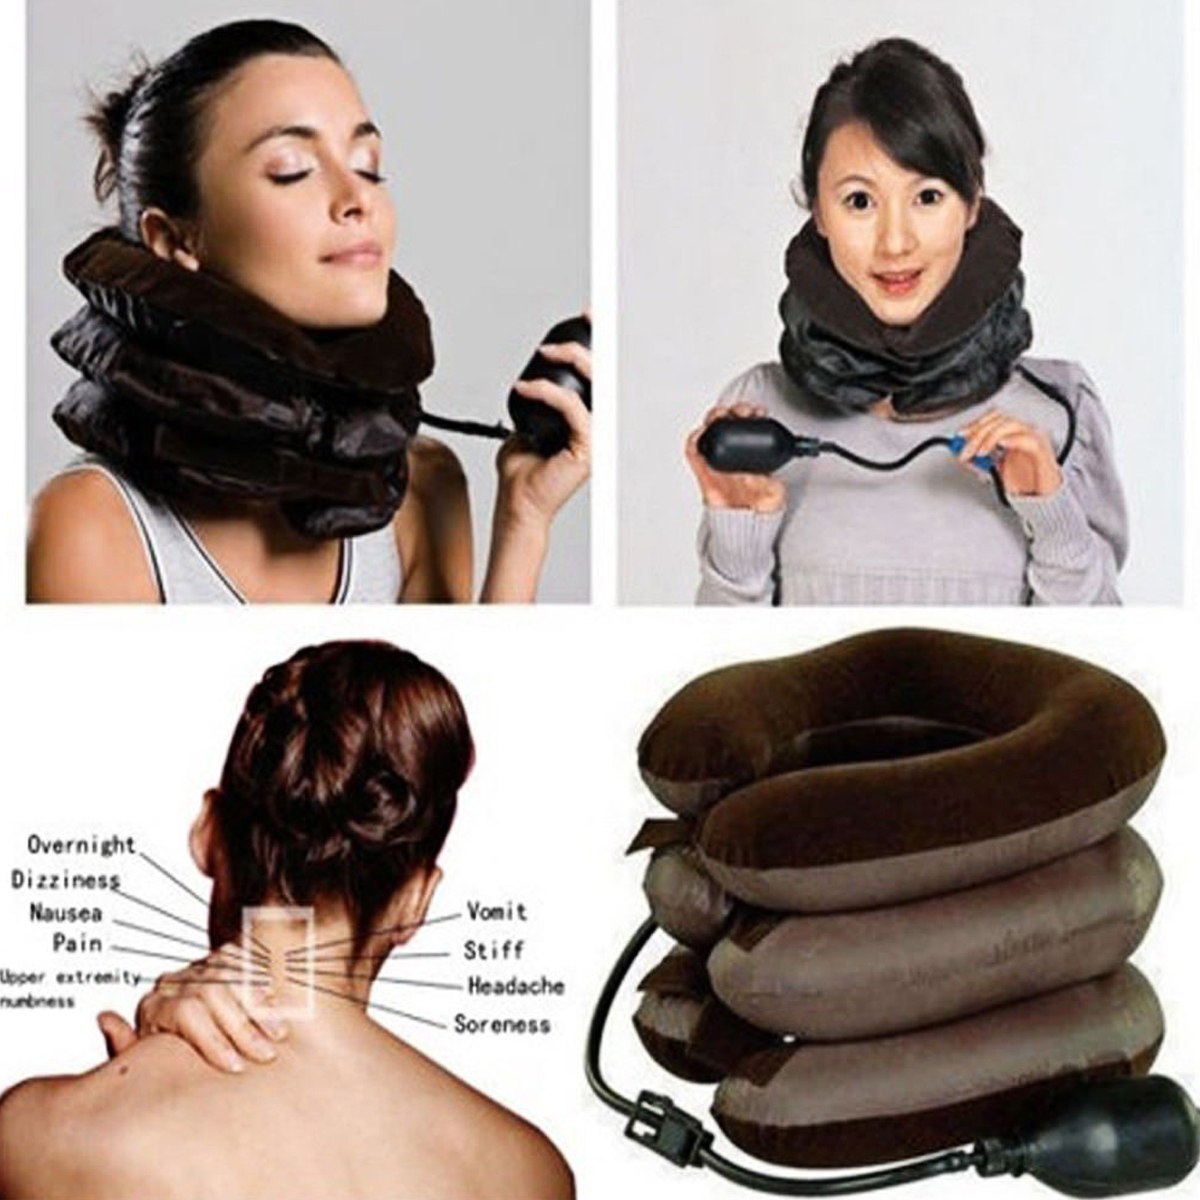 Neck Massager Neck Brace Support Cervical Collar Air Traction Fatigue Reliever Therapy Device